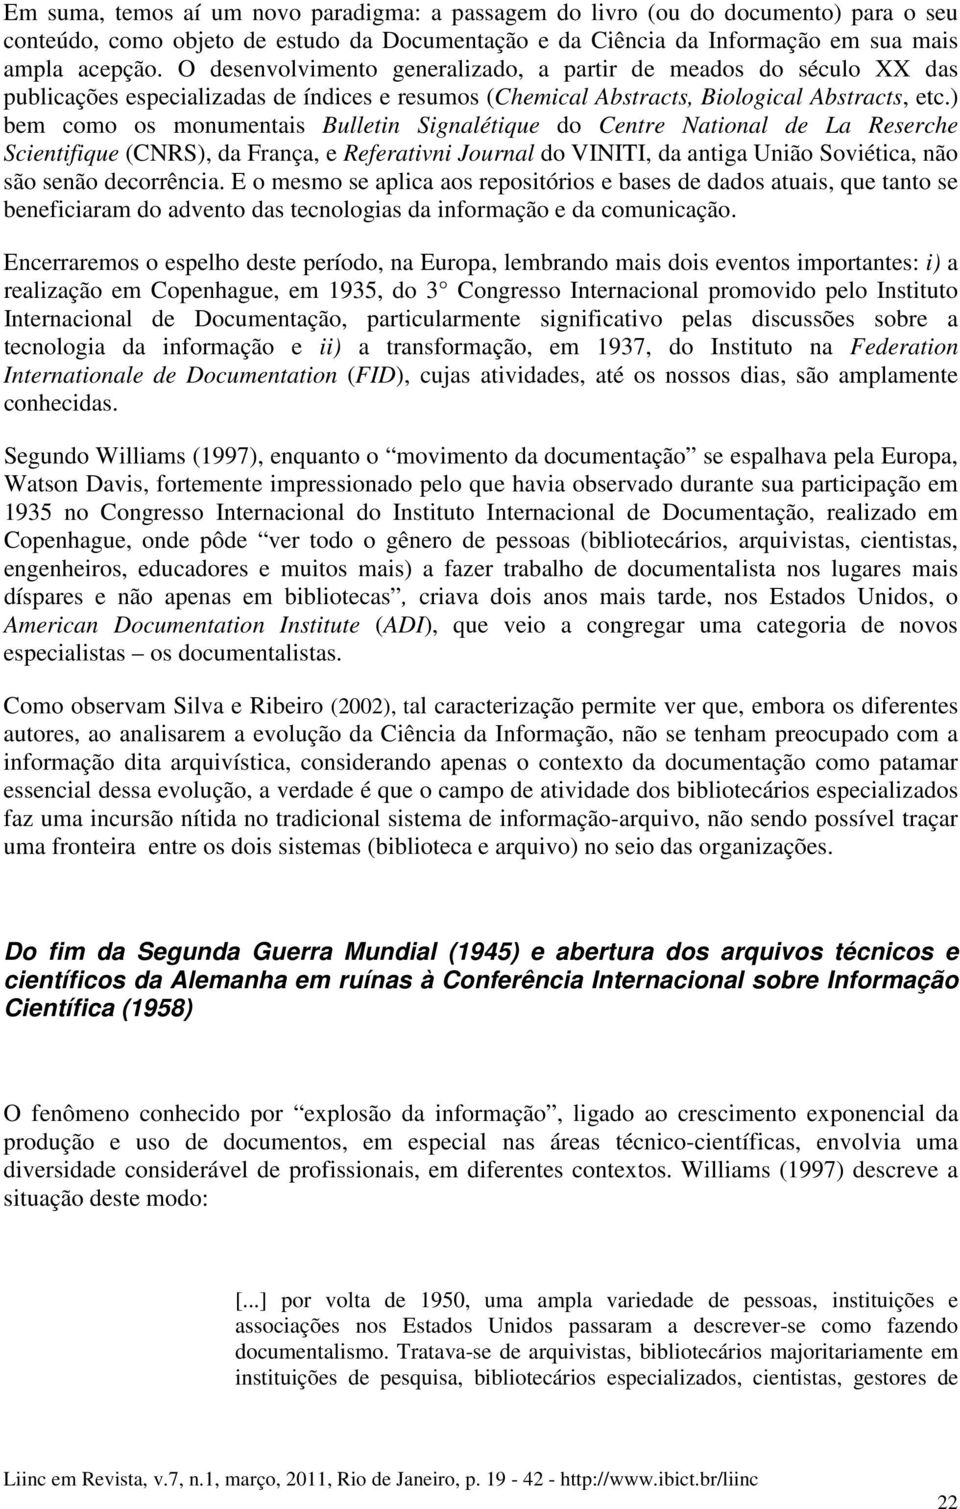 ) bem como os monumentais Bulletin Signalétique do Centre National de La Reserche Scientifique (CNRS), da França, e Referativni Journal do VINITI, da antiga União Soviética, não são senão decorrência.